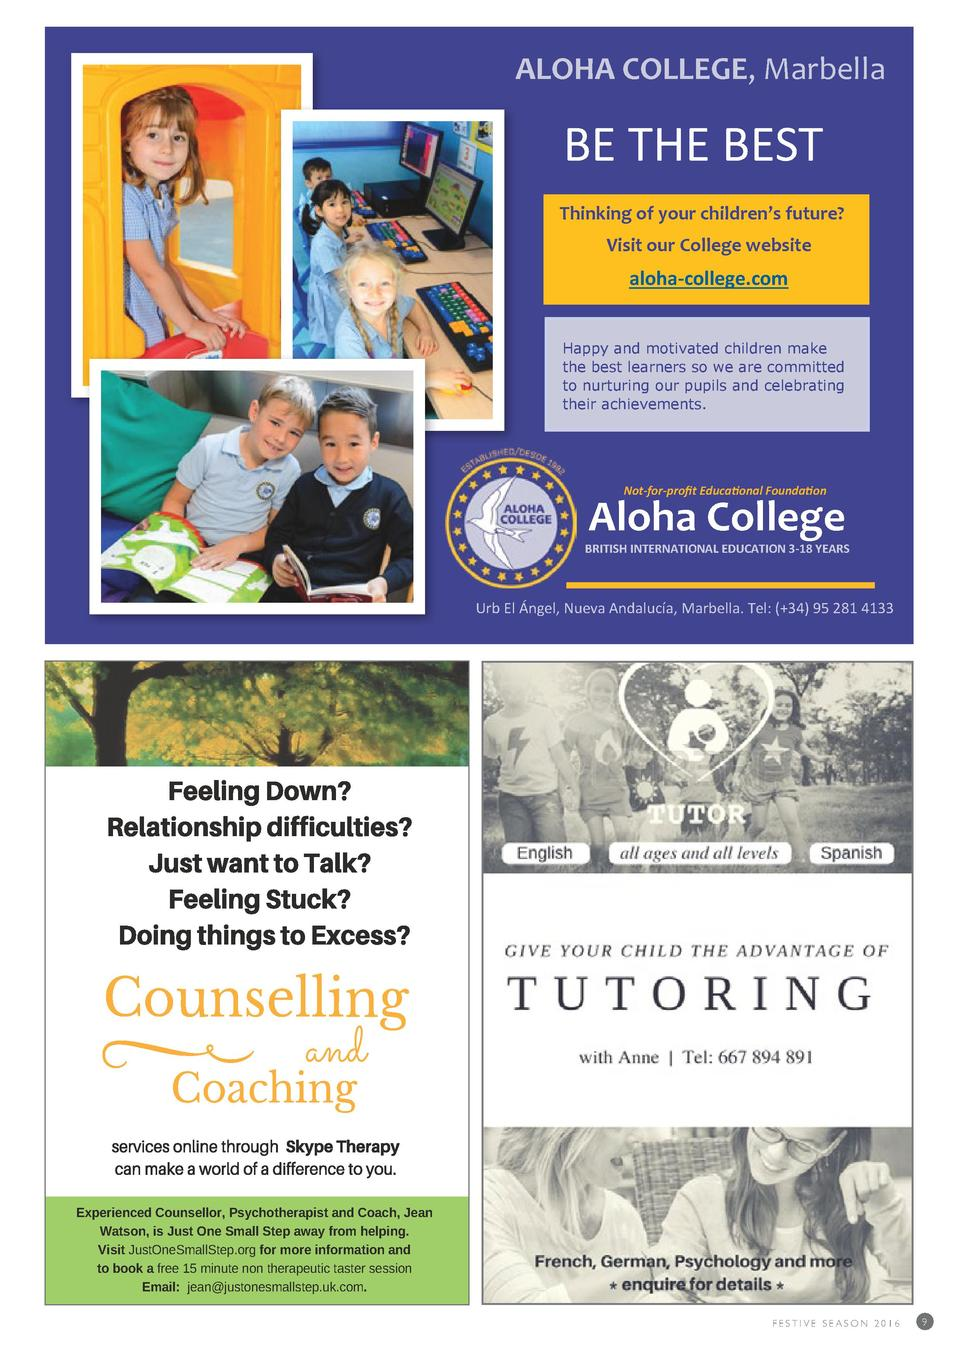 ALOHA COLLEGE, Marbella  BE THE BEST Thinking of your children   s future  Visit our College website  aloha-college.com Ha...